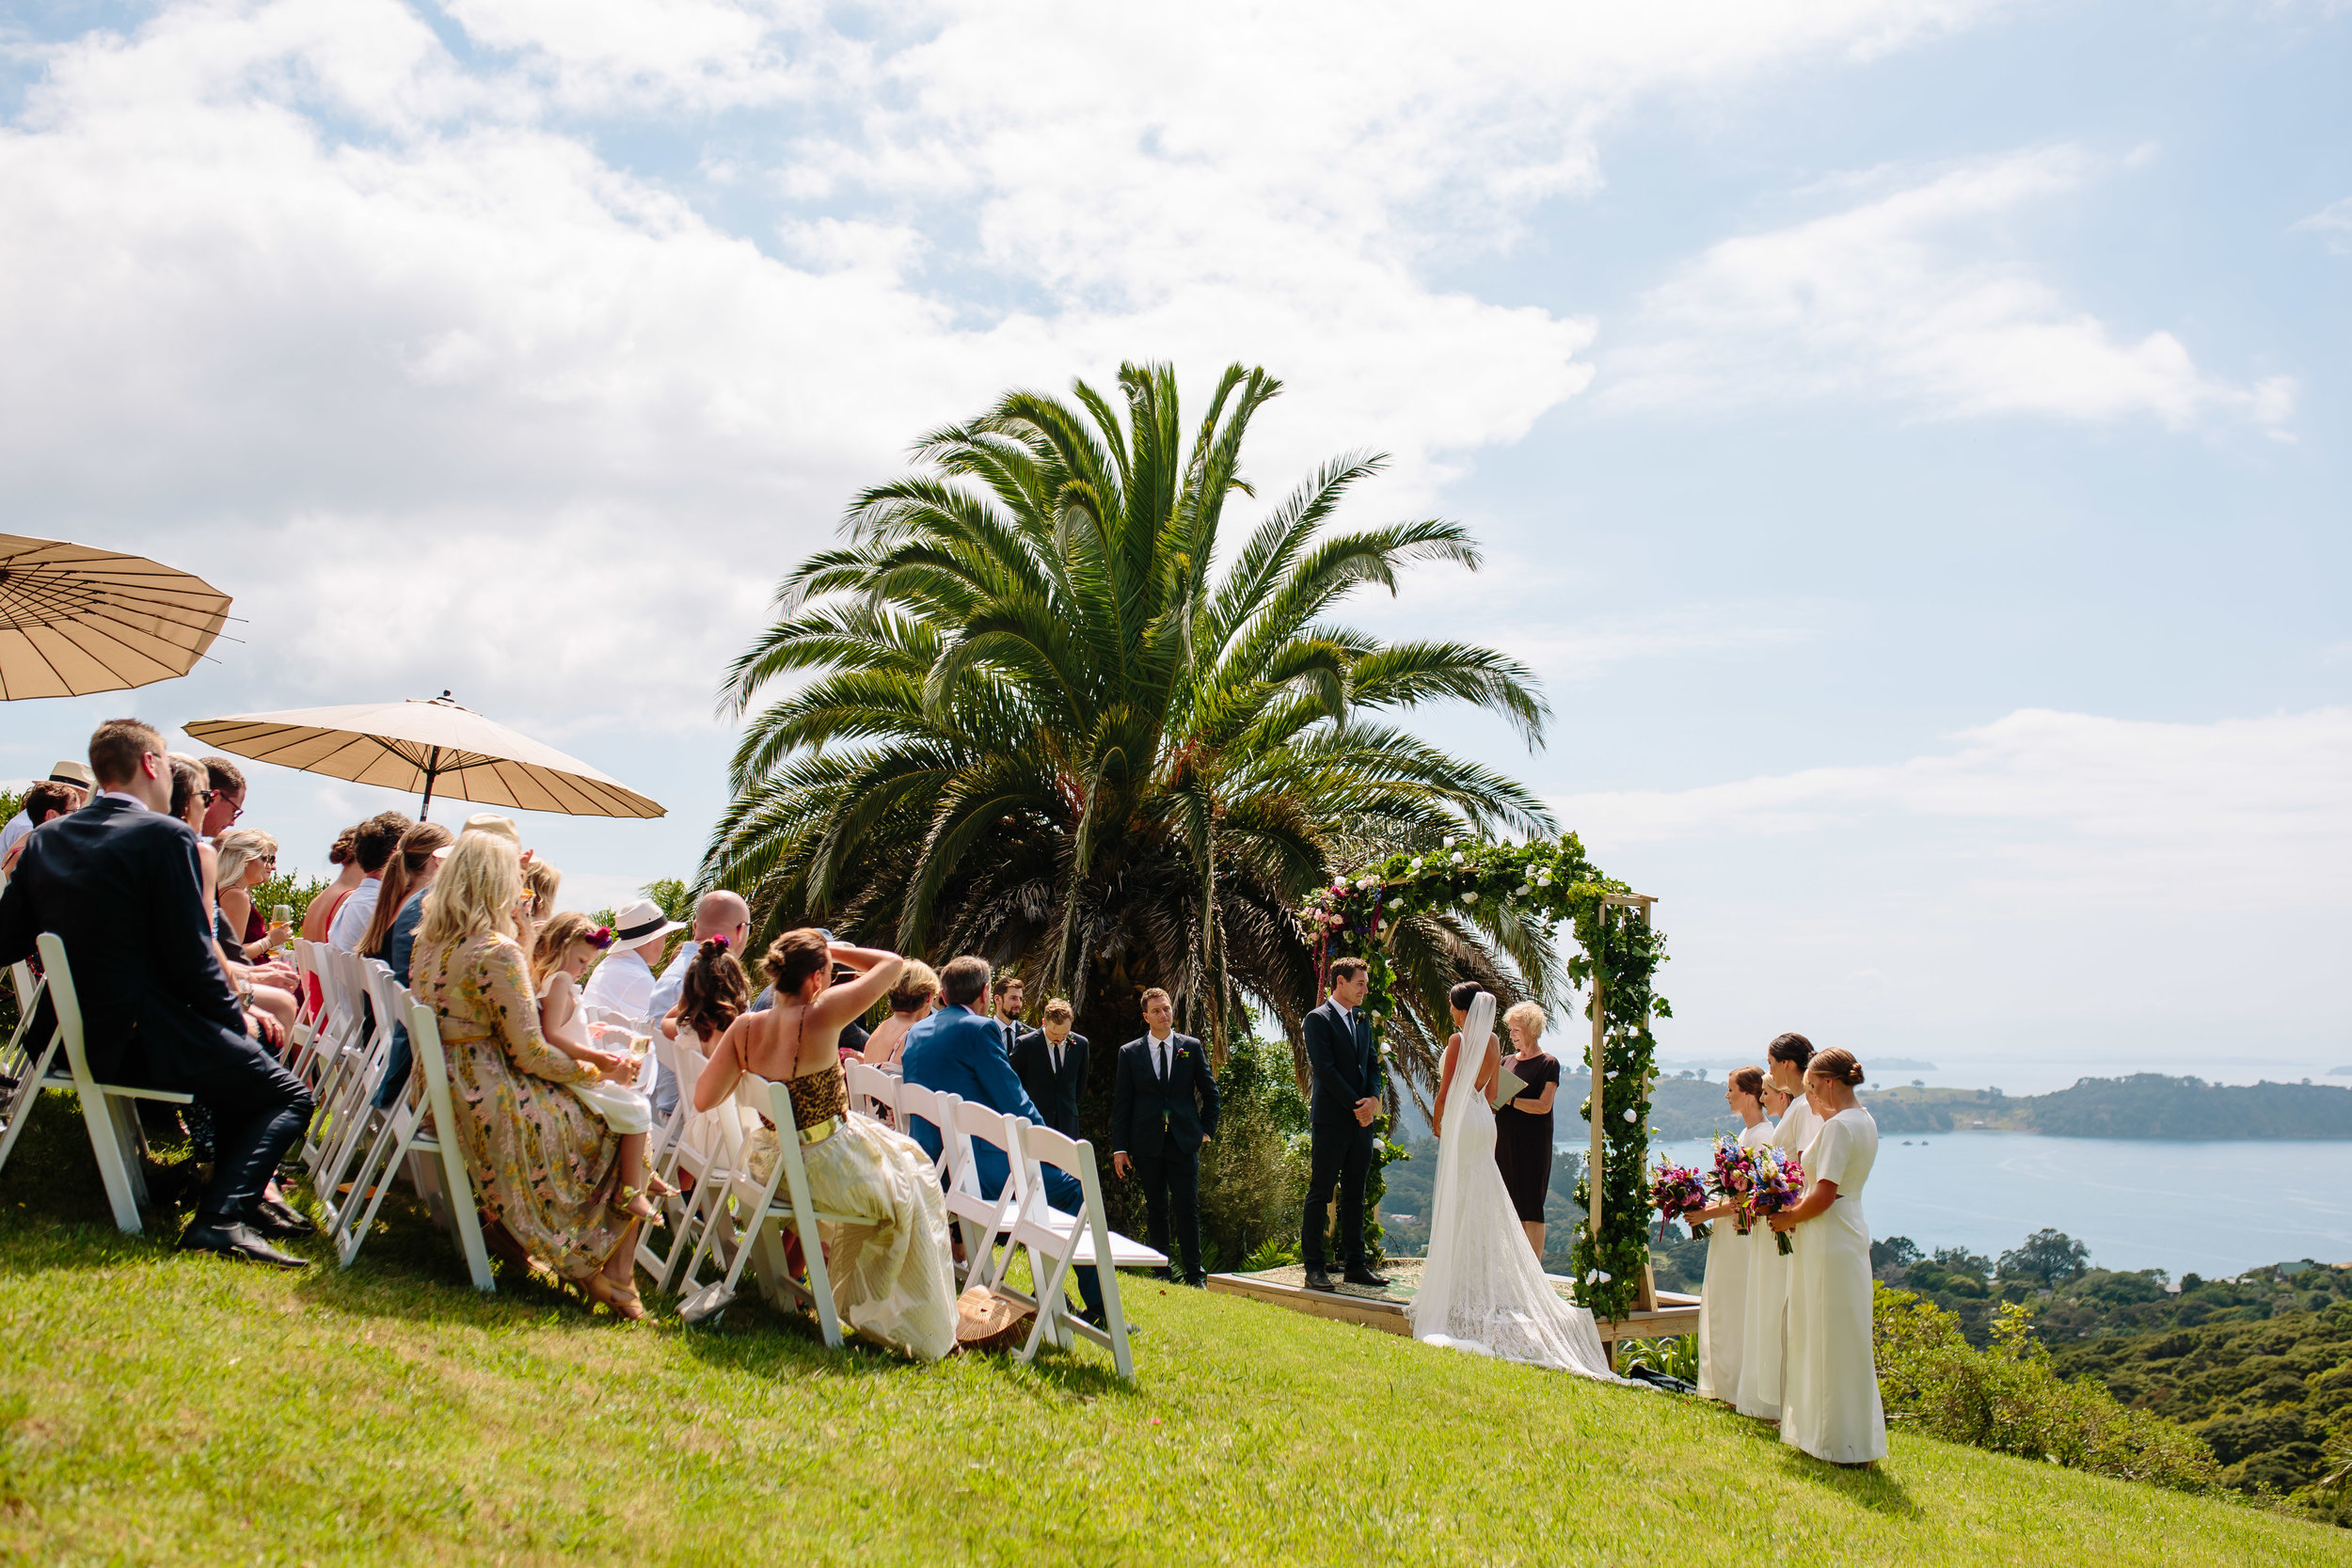 354_Alex-Tommo-wedding-the-official-photographers_OPS_4753.jpg